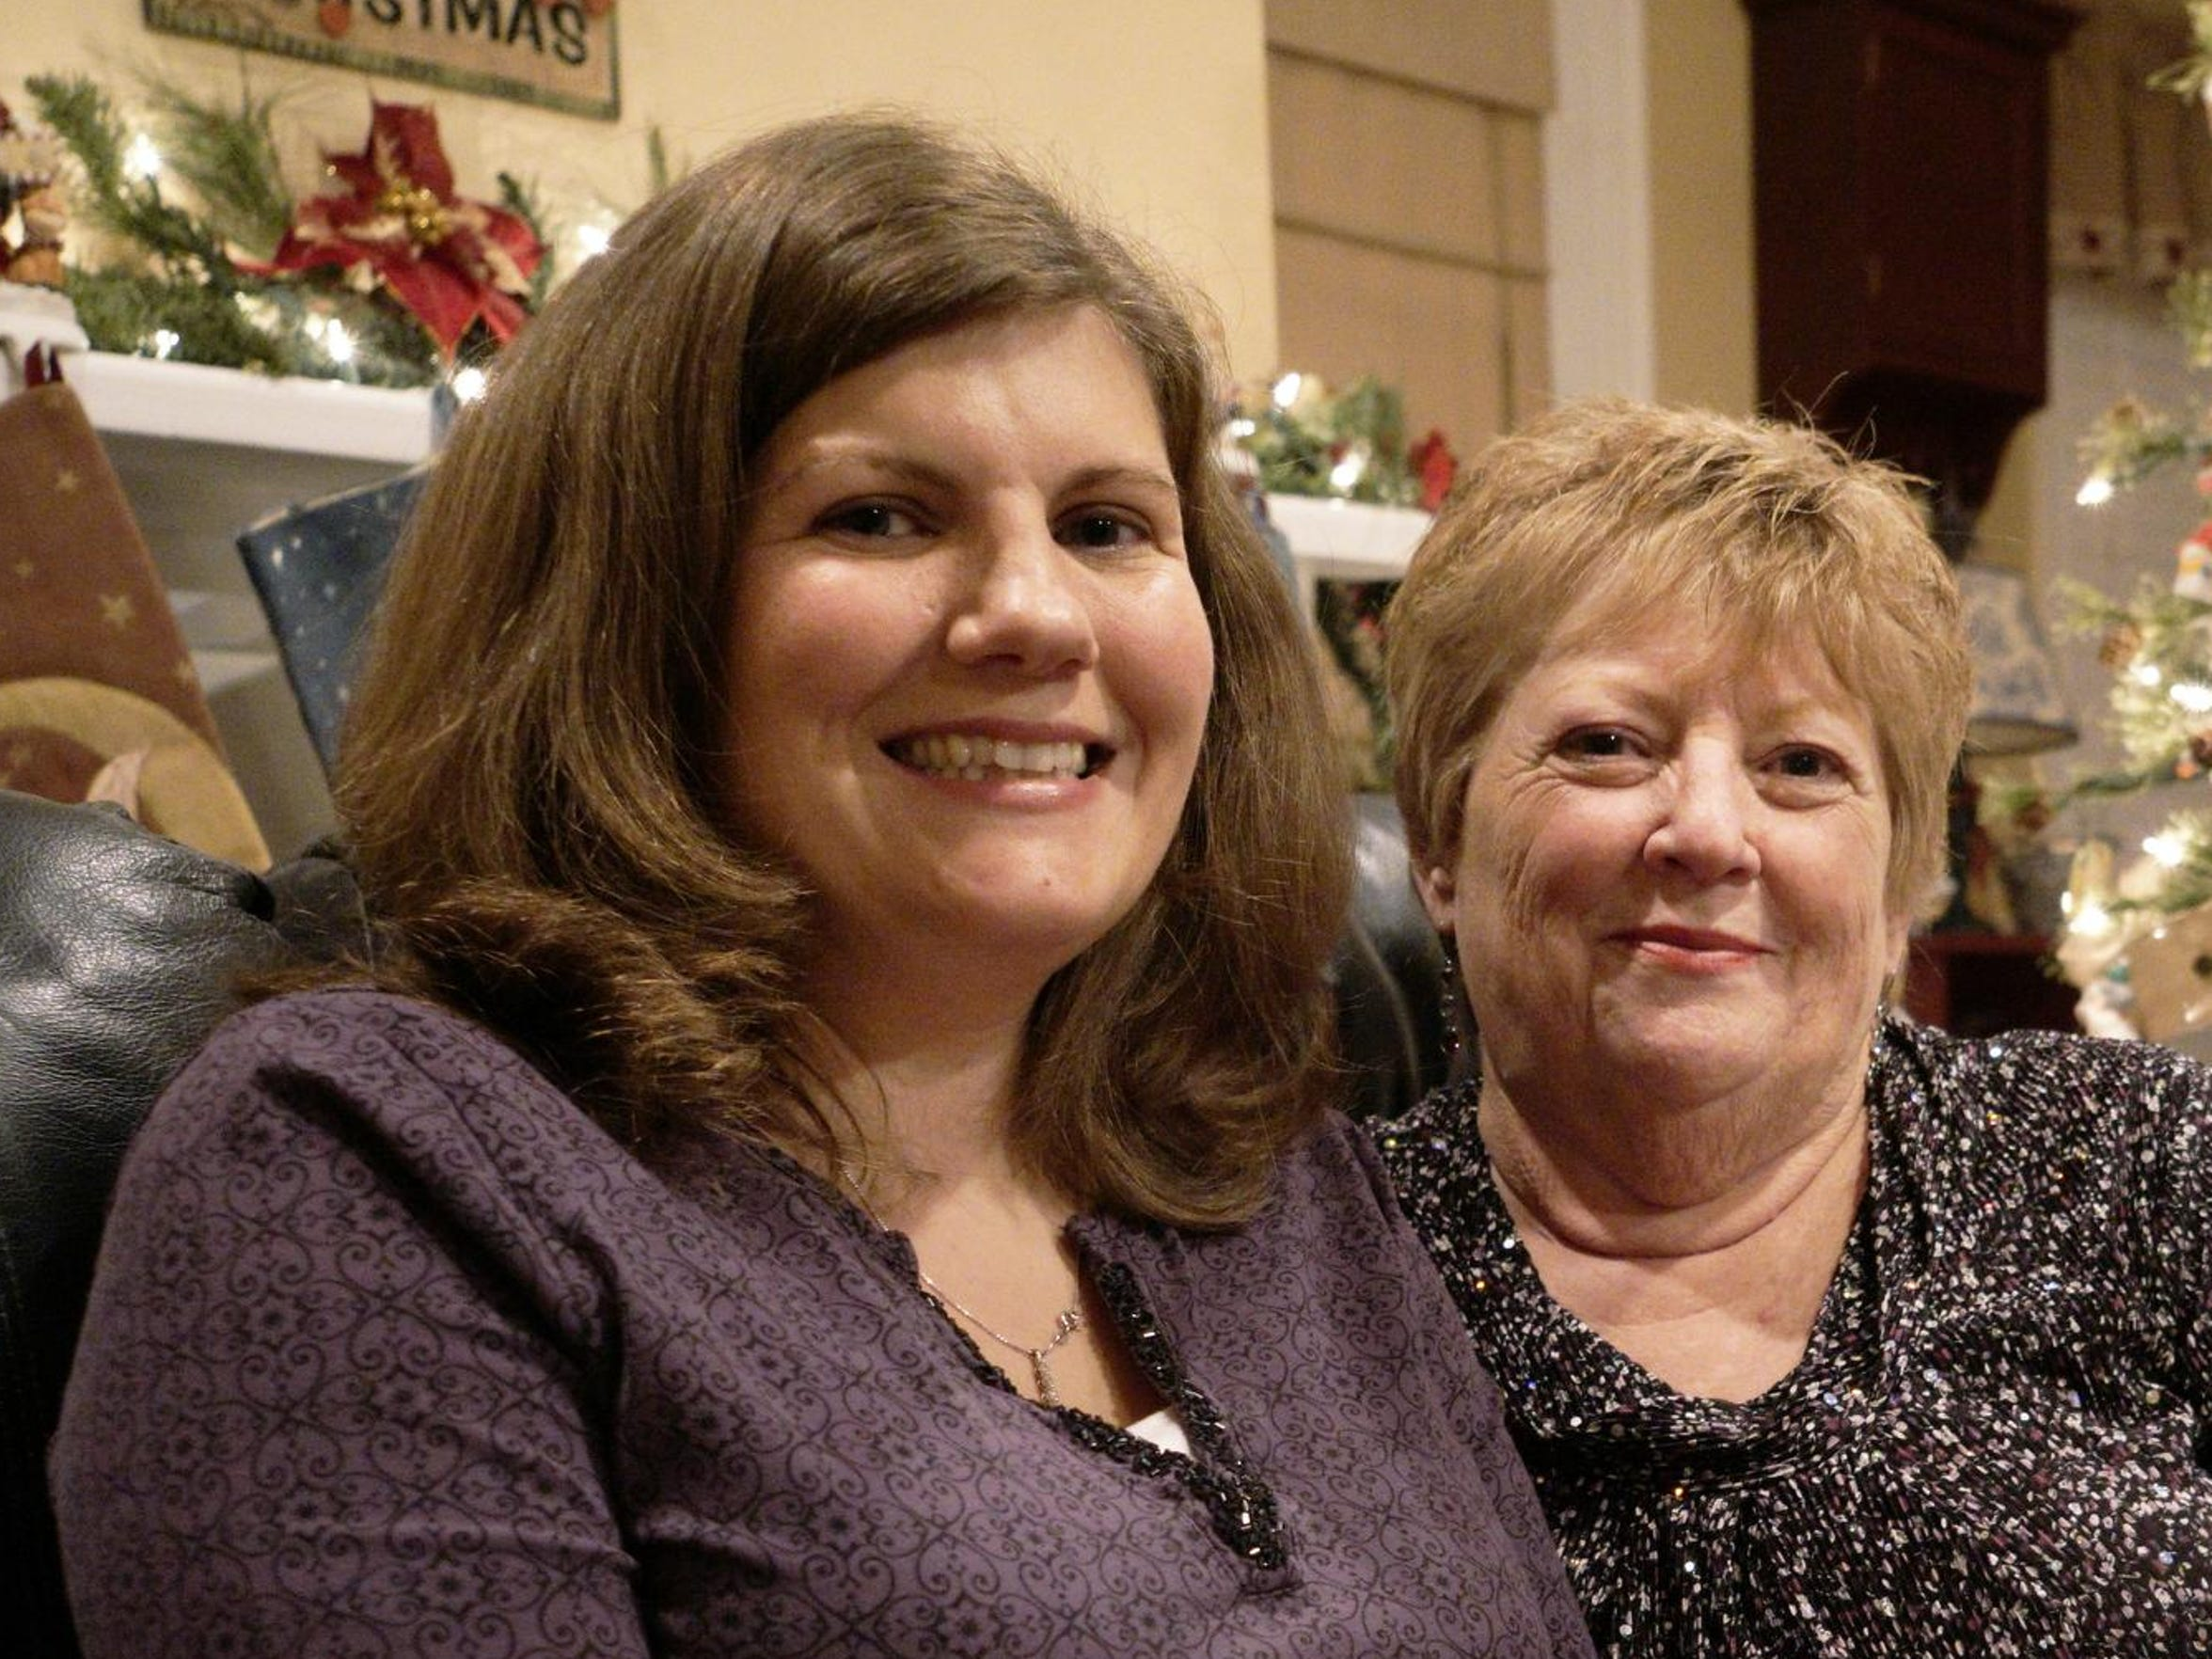 Jessica Martin, left, has donated her organs twice